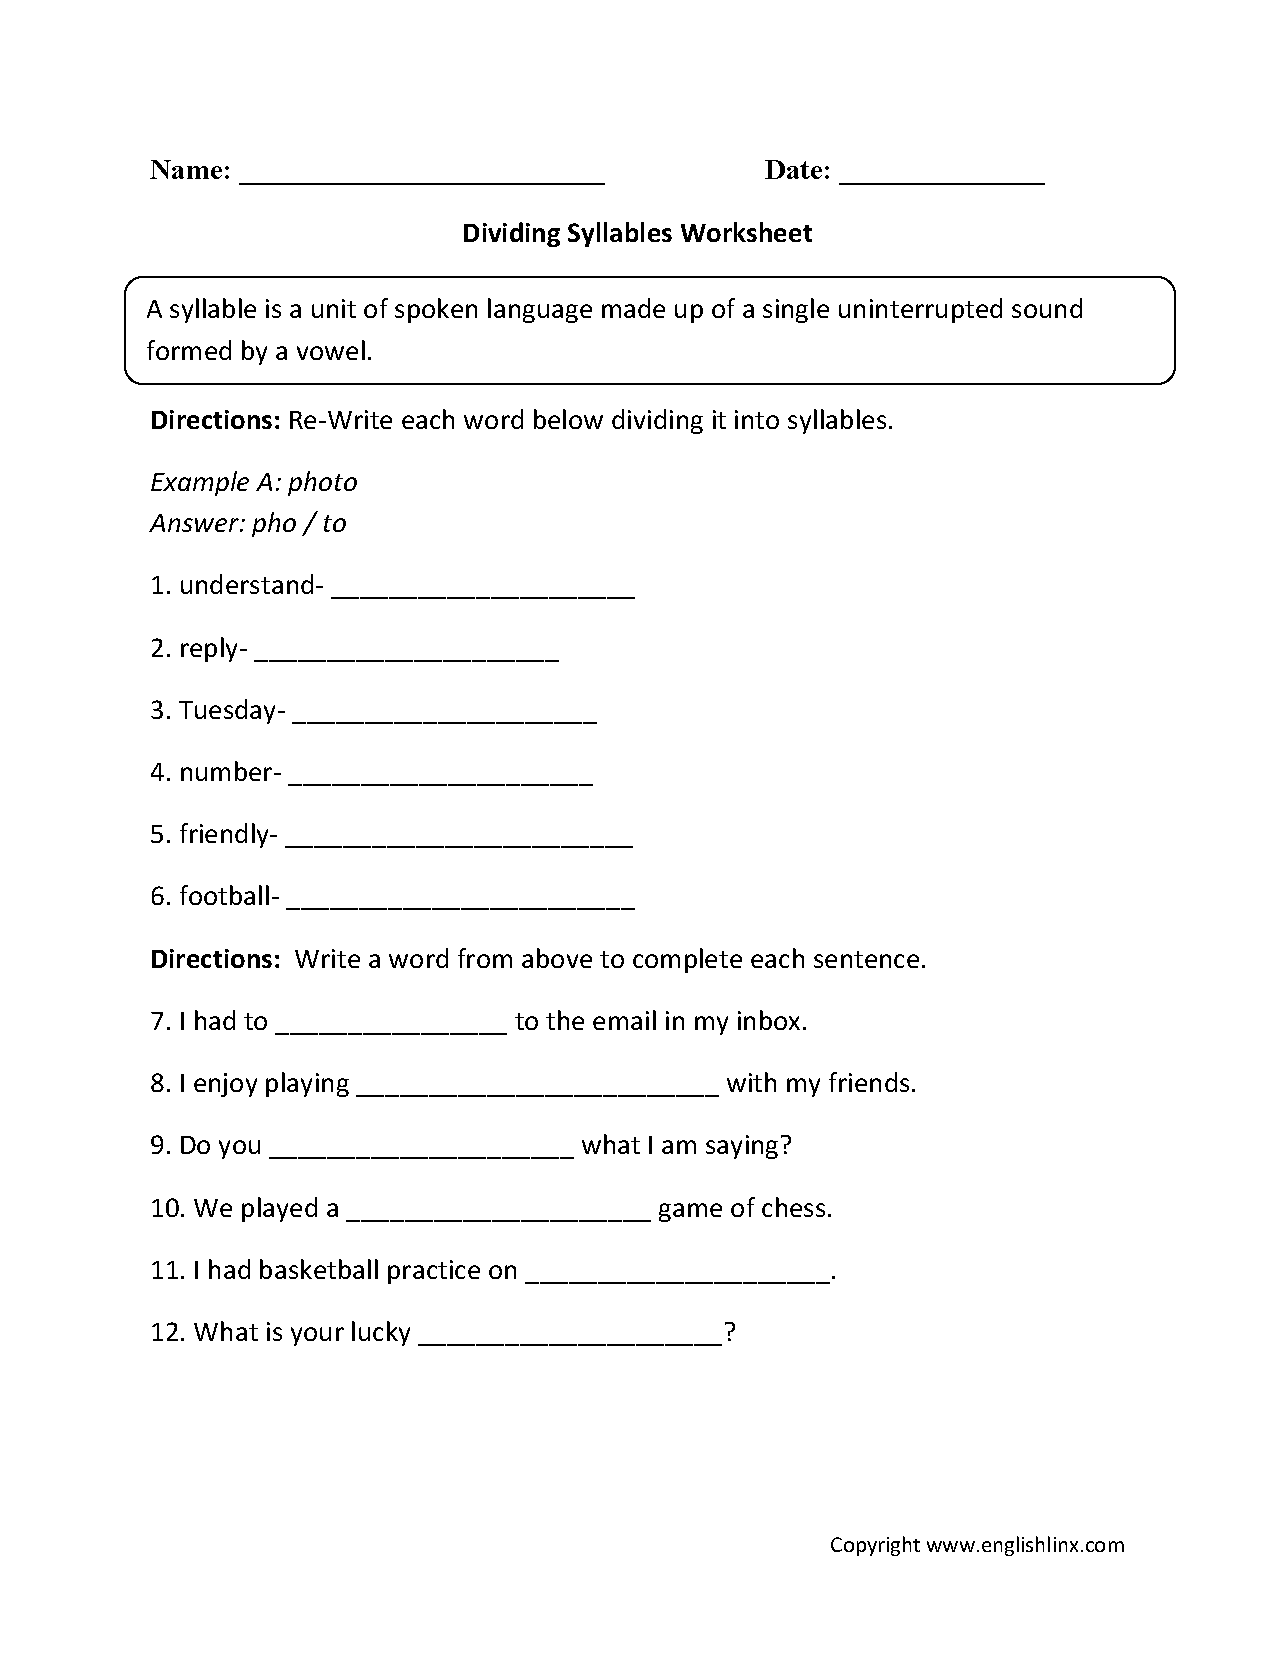 Worksheets Syllable Worksheet dividing syllables worksheet teaching resources pinterest syllable worksheets and resources